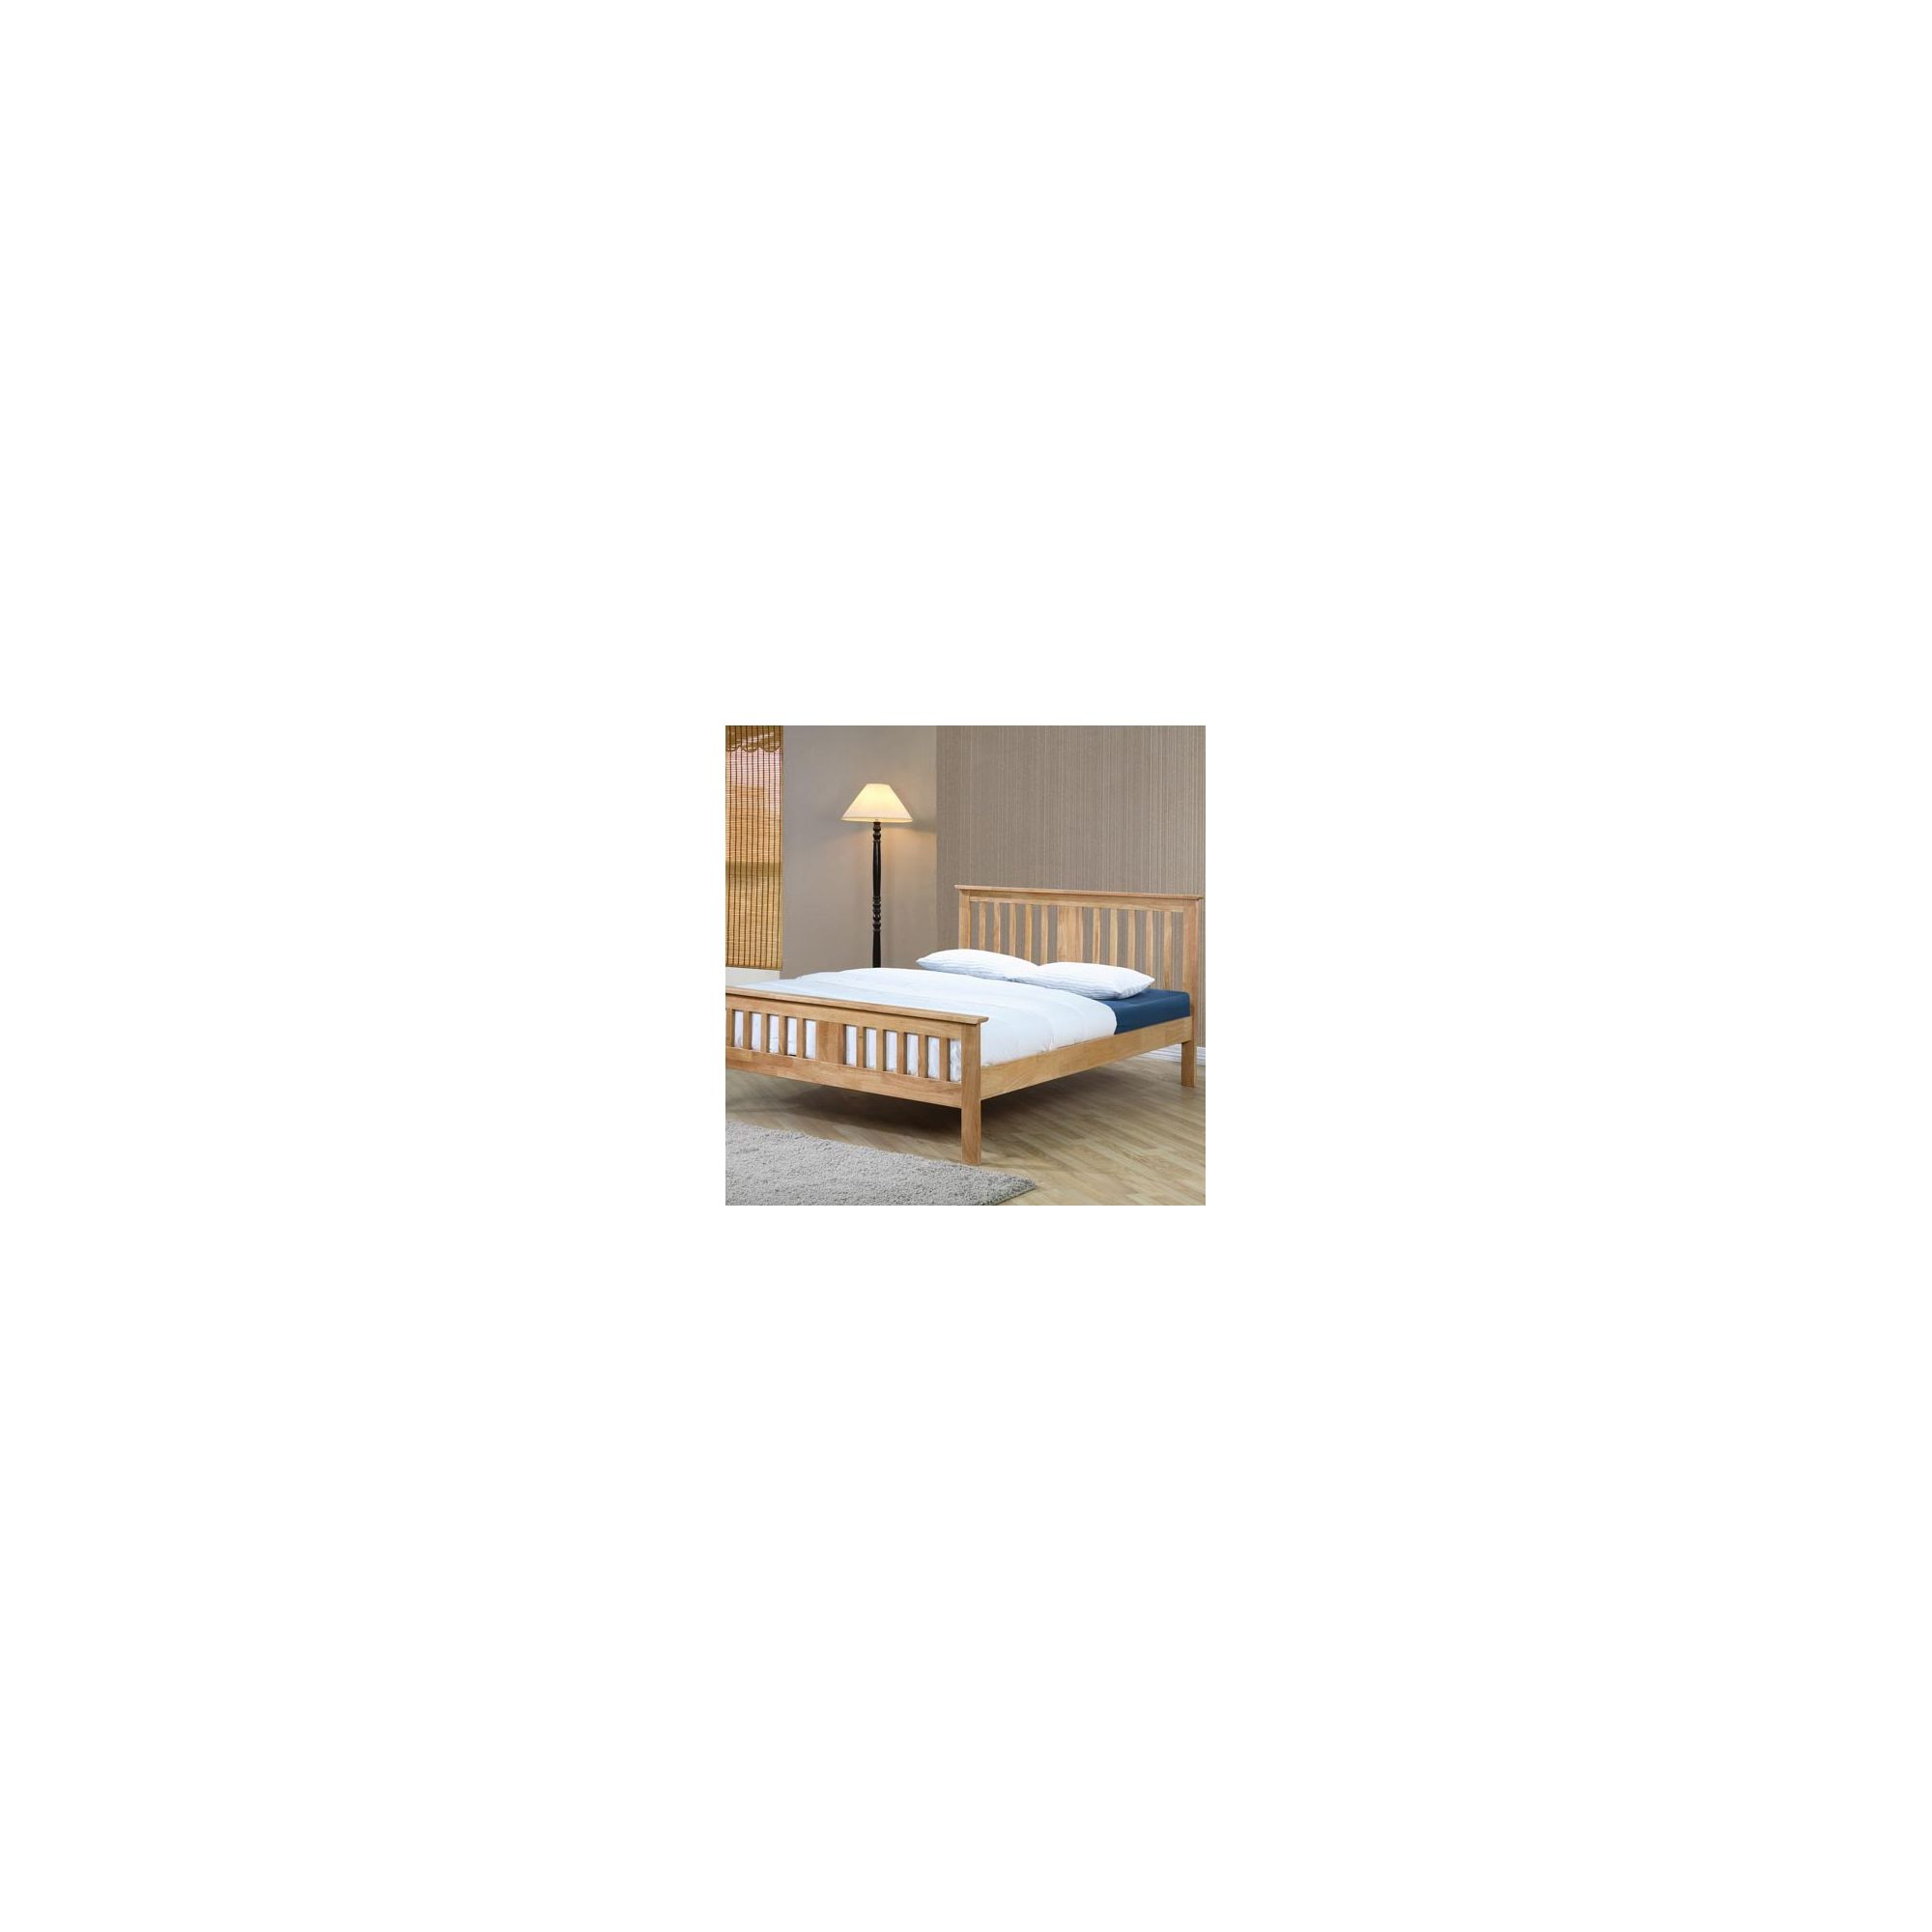 Sleepy Valley Brent Bed - Small Double - Oak - No Drawers at Tesco Direct